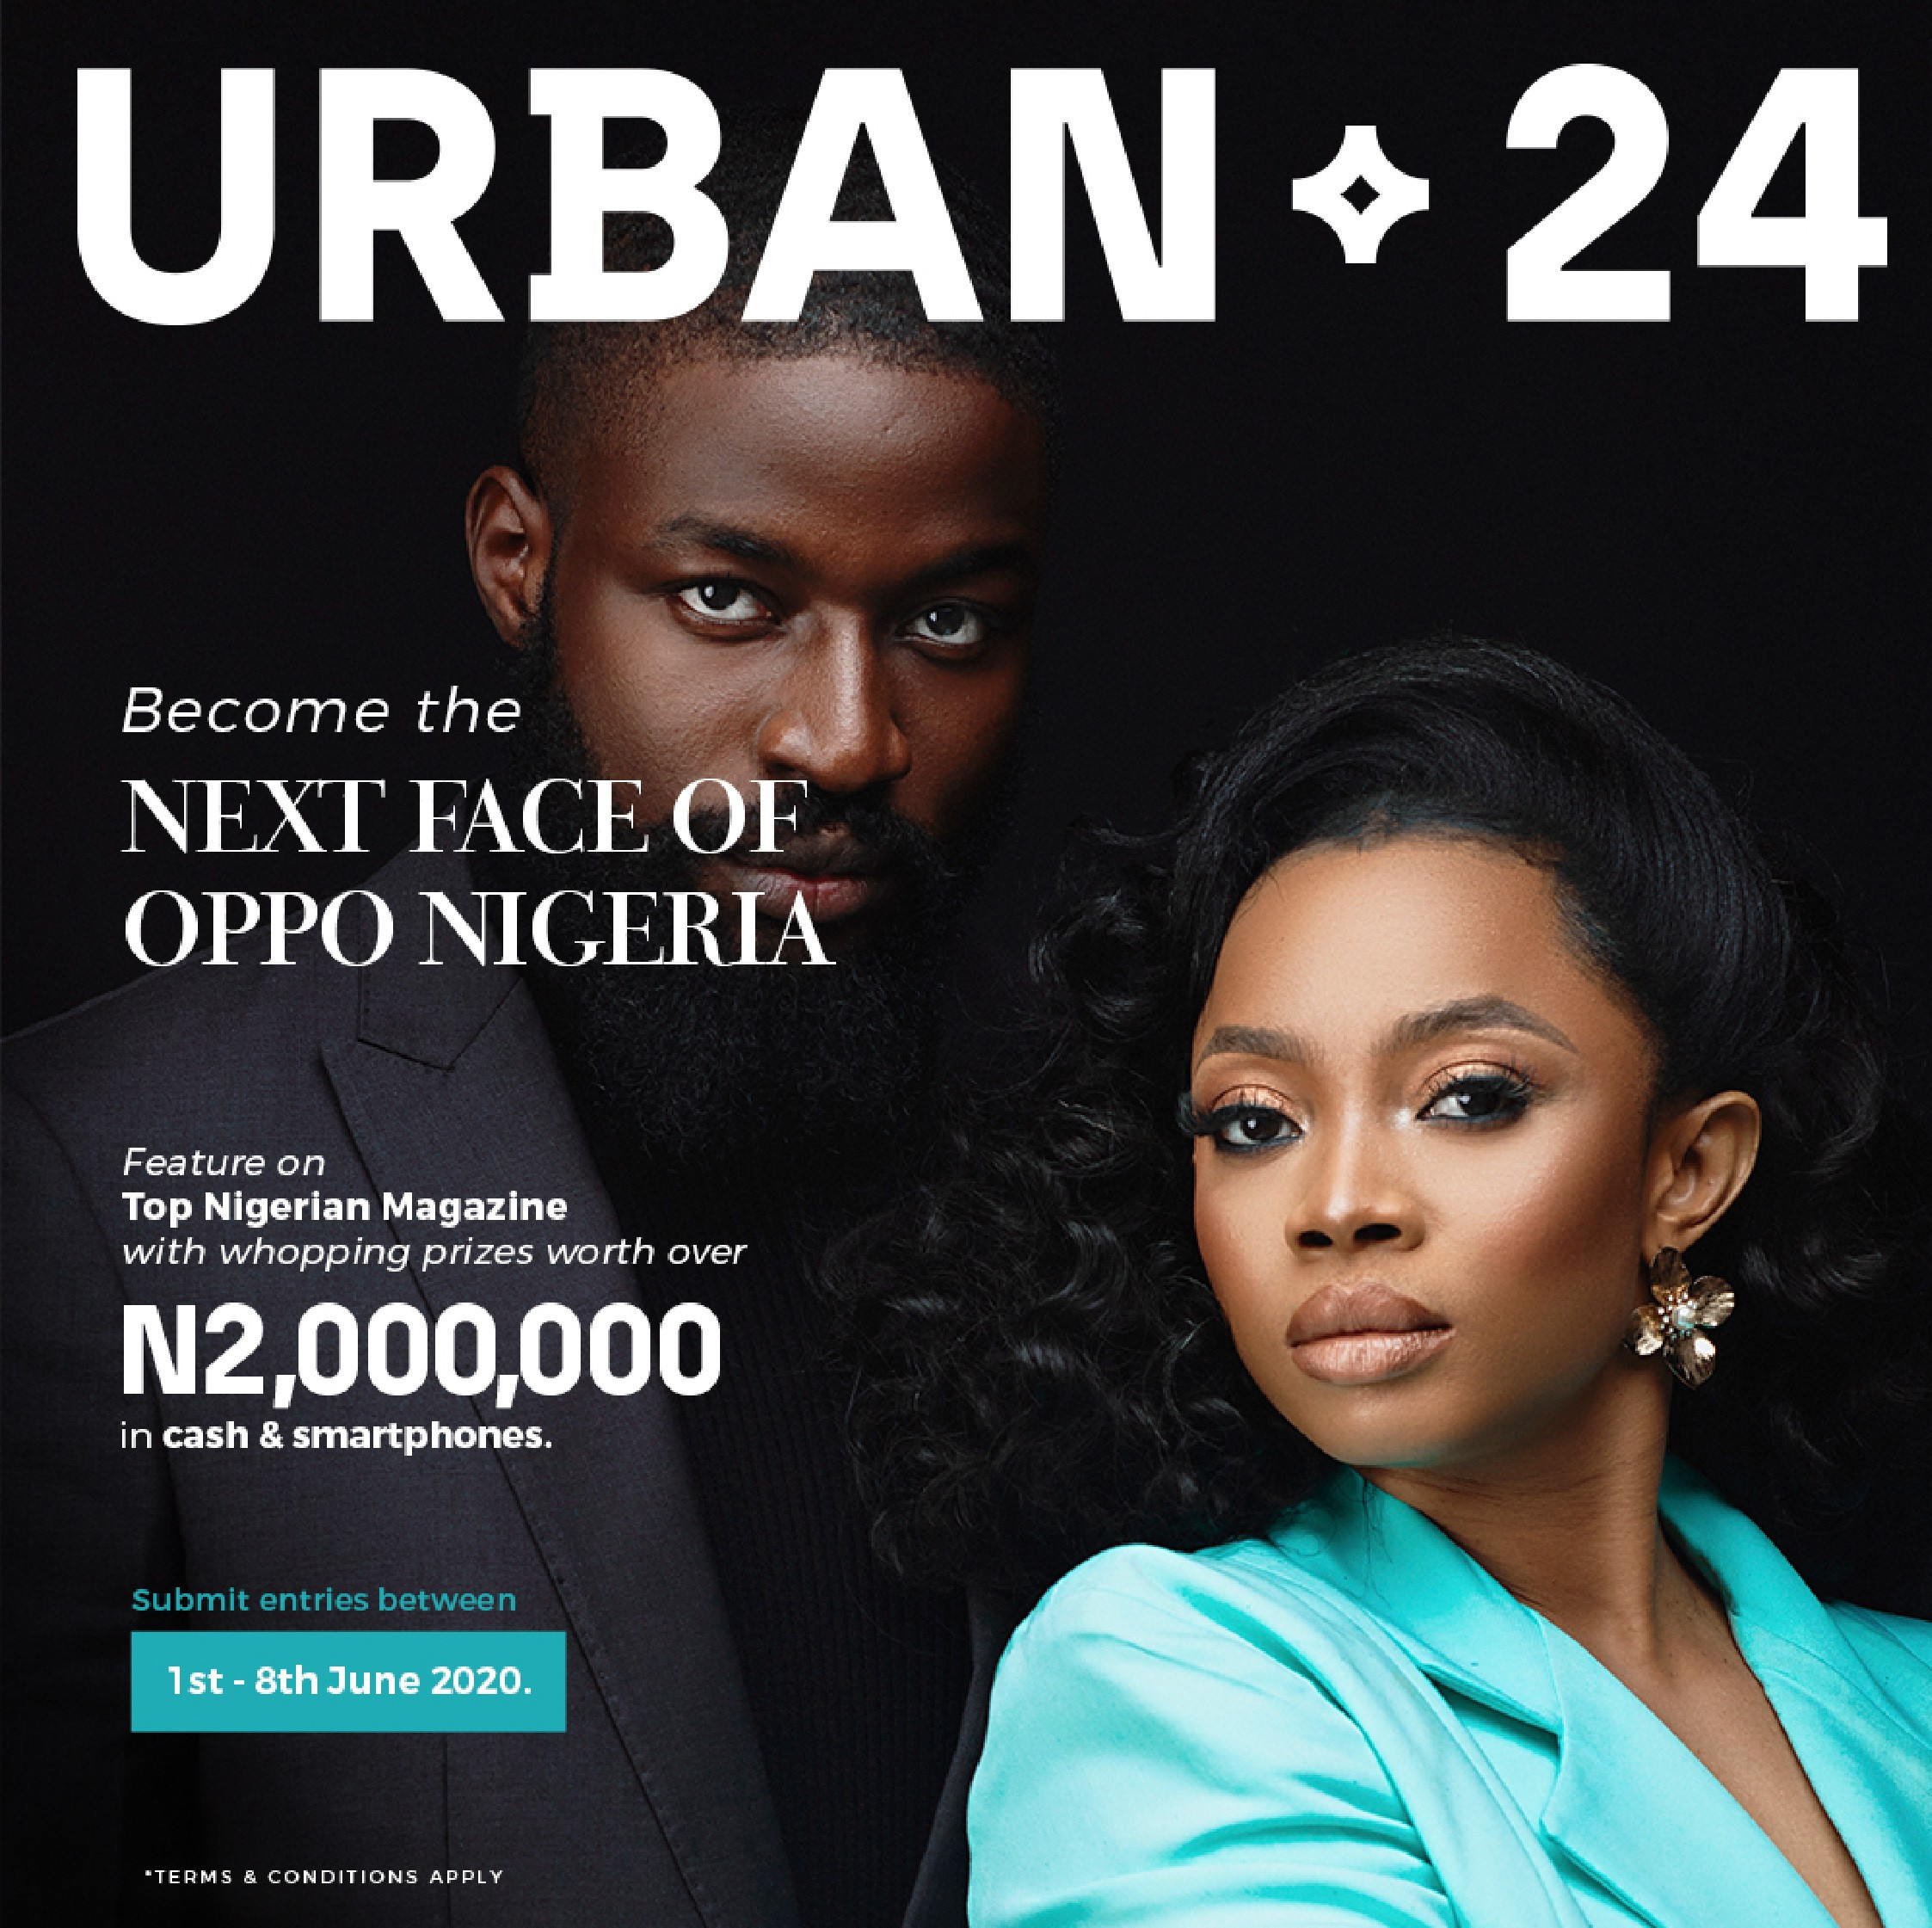 Become The Next Nigerian Top Model in The OPPO Reno3 Urban24 Contest lindaikejisblog3